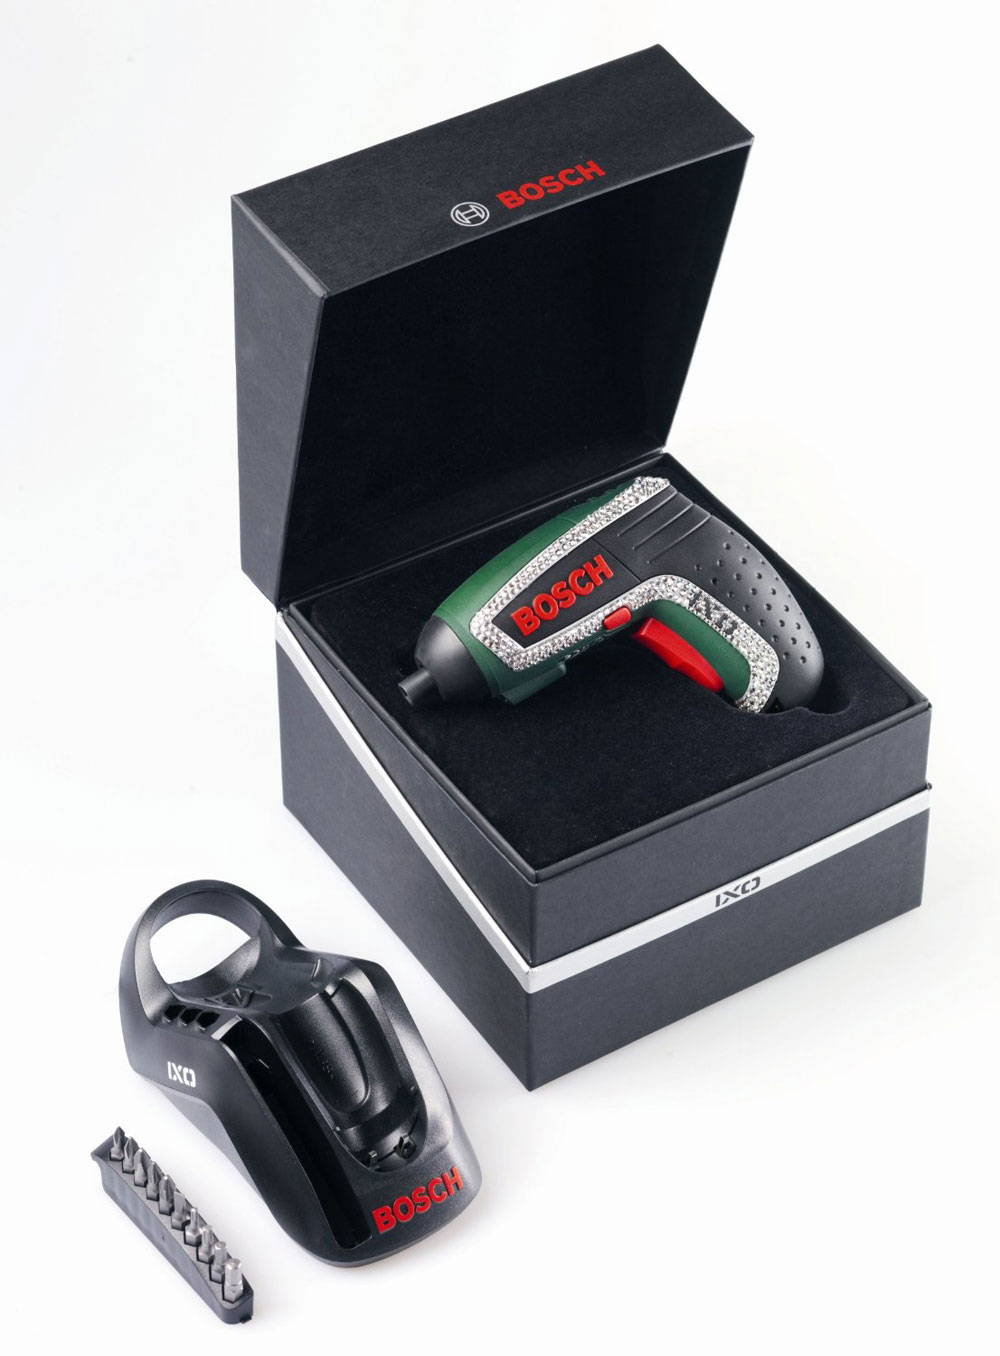 Limited Edition Bosch IXO Screwdriver With Swarovski Crystals